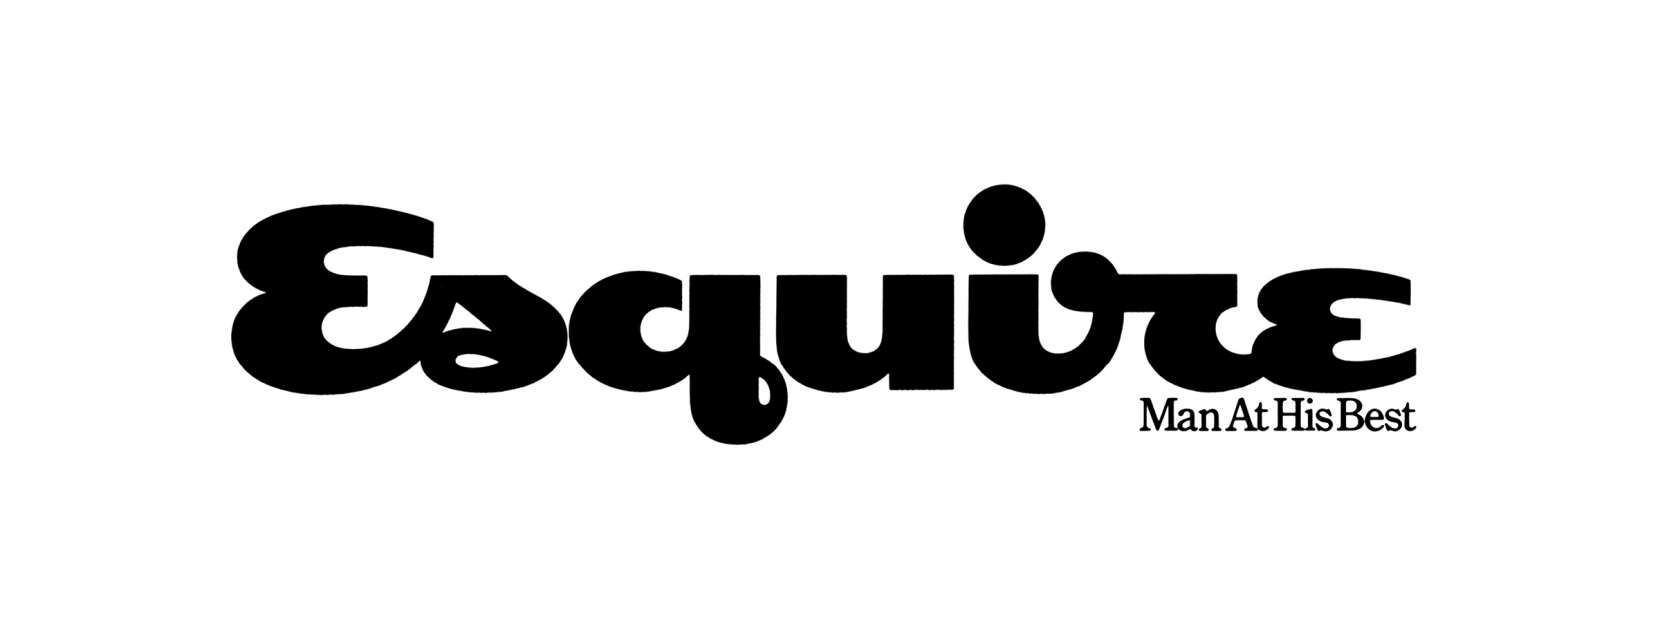 Logos_LargeView_Esquire1-1660x622.jpg